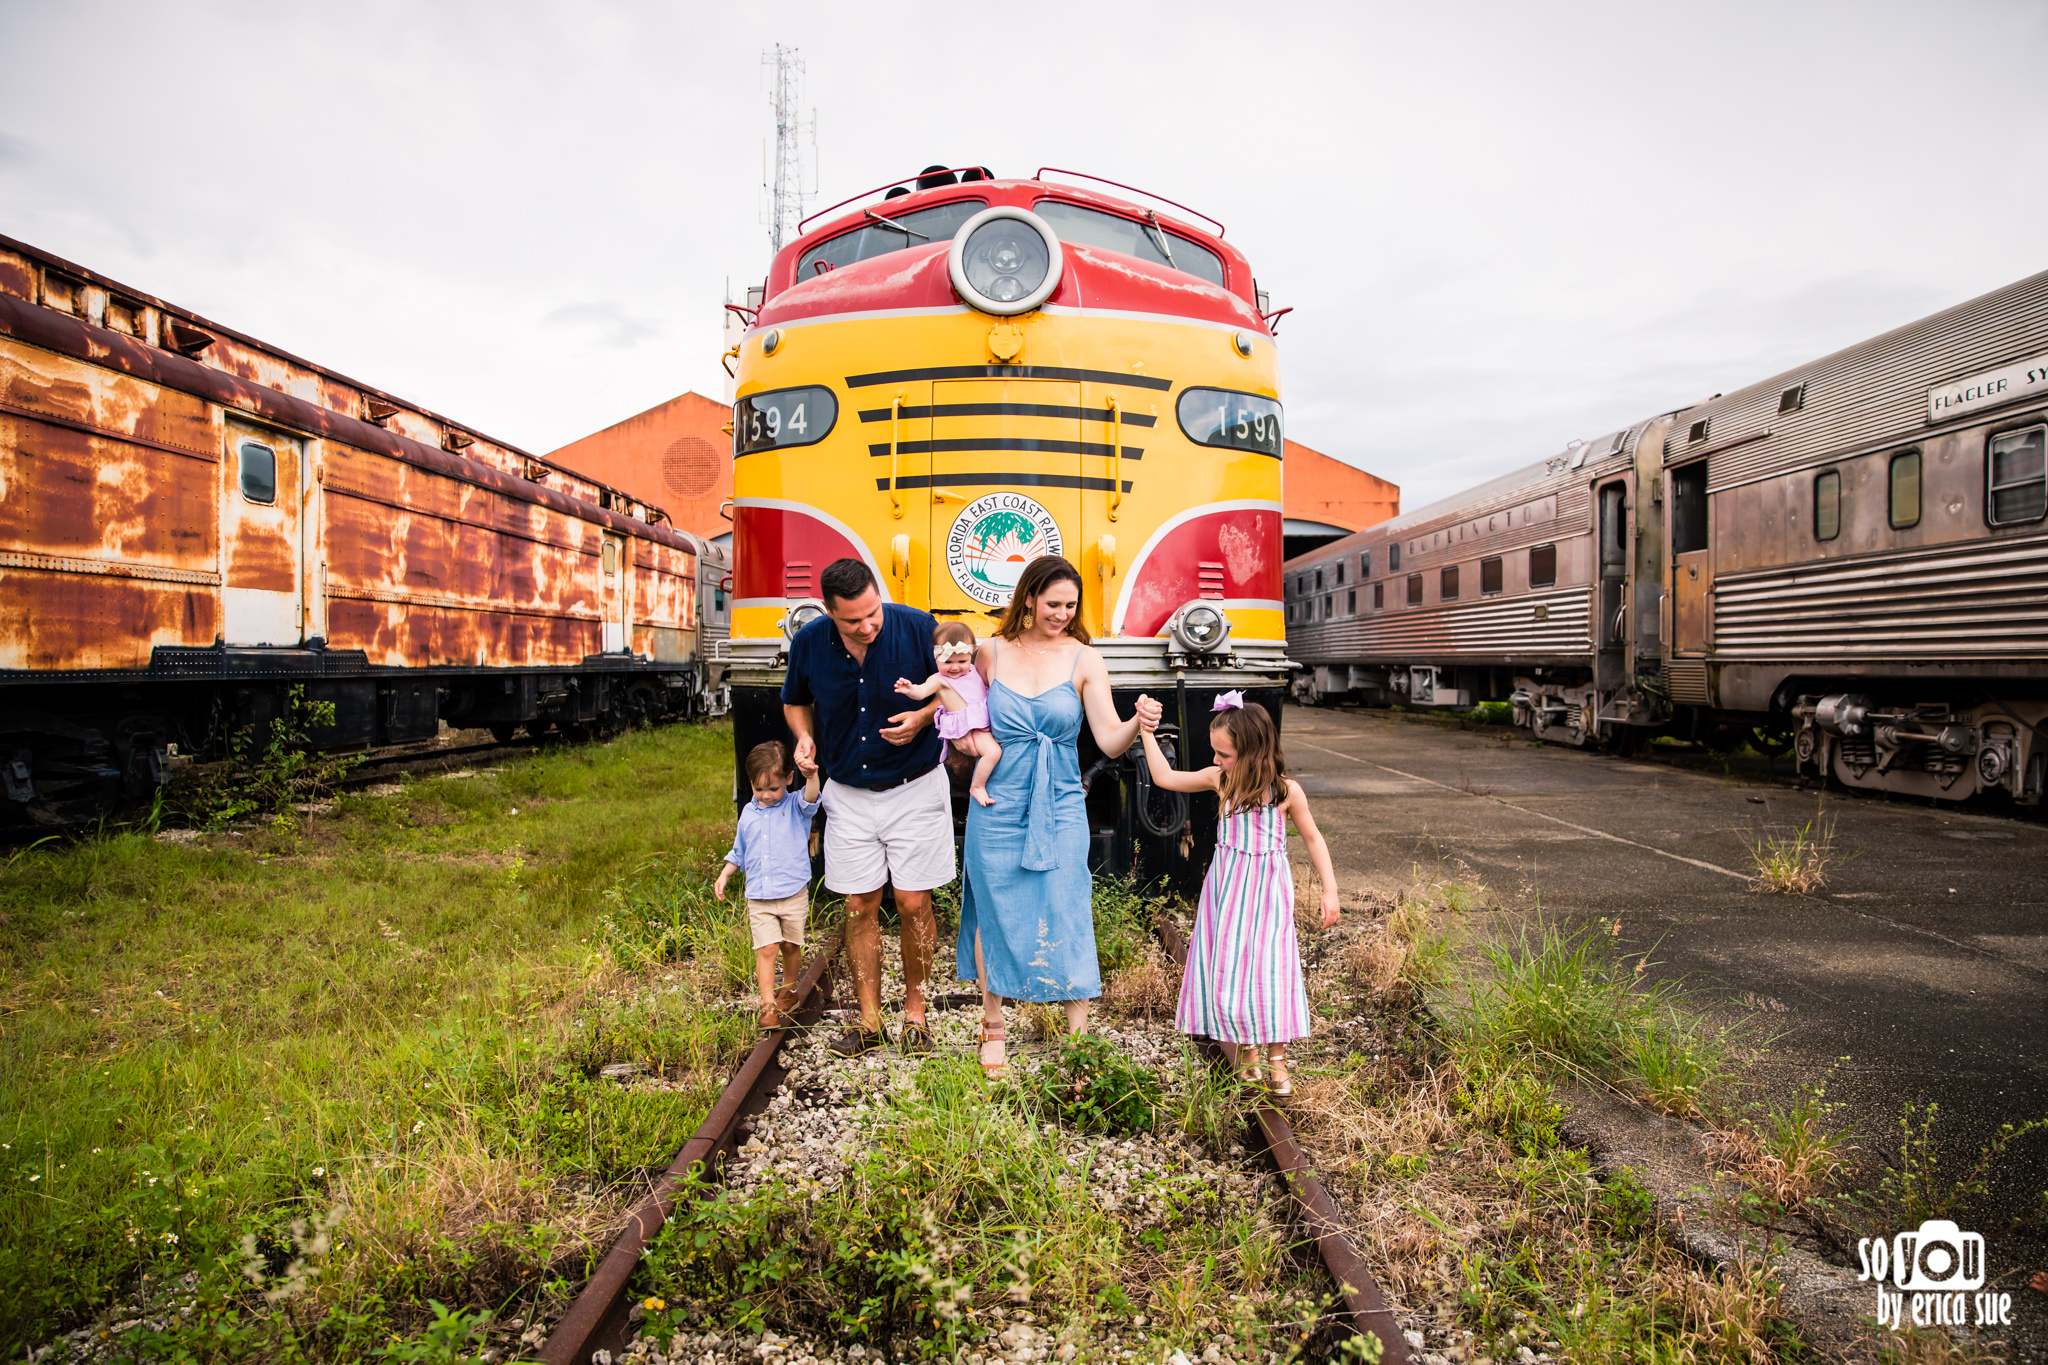 so-you-by-erica-sue-gold-coast-railroad-museum-miami-family-photo-shoot-session-7507.JPG